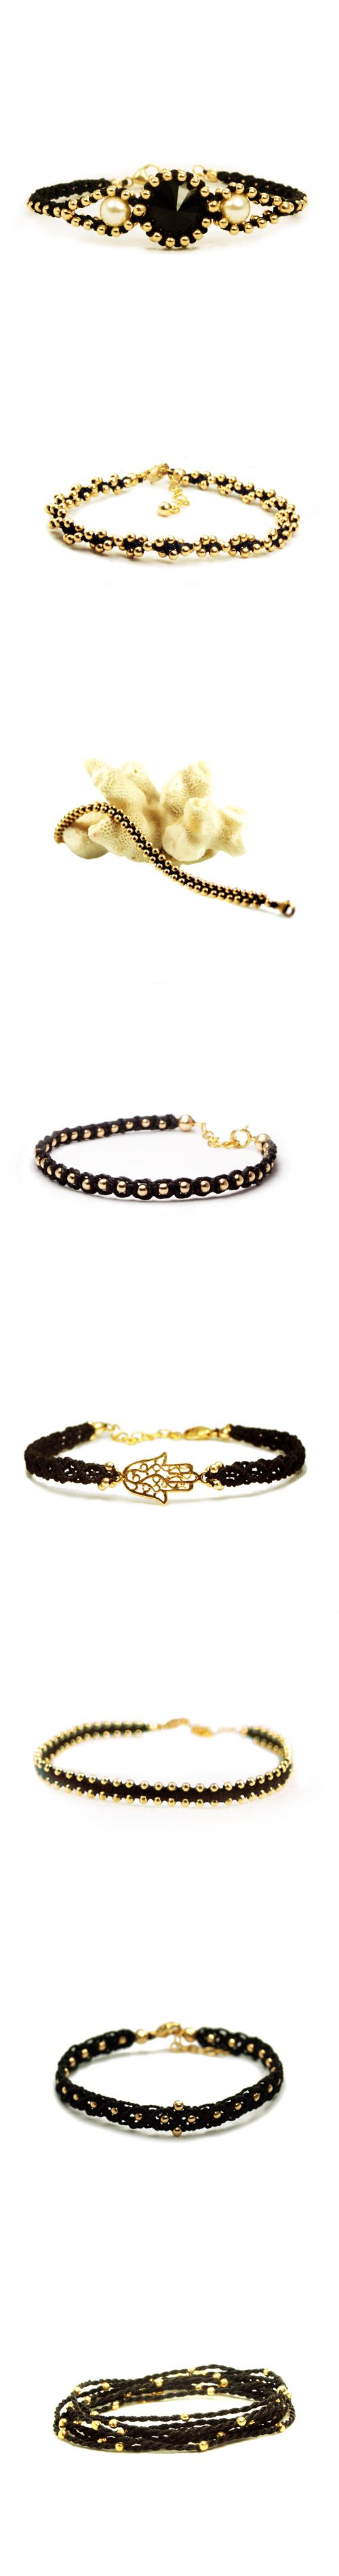 Black and 14K Gold Filled Macrame Bracelets all Designed and Hand knotted by The Macrame Project; a Boho Chic Style Ethical Fashion Brand producing designer Micro Macrame Jewelry a long side village women.  #Fashion  #FashionBloggers  #EthicalFashion #FairTrade  #handmade #Jewellery #Jewelry #BohoChic #Bohemian #HippieChic